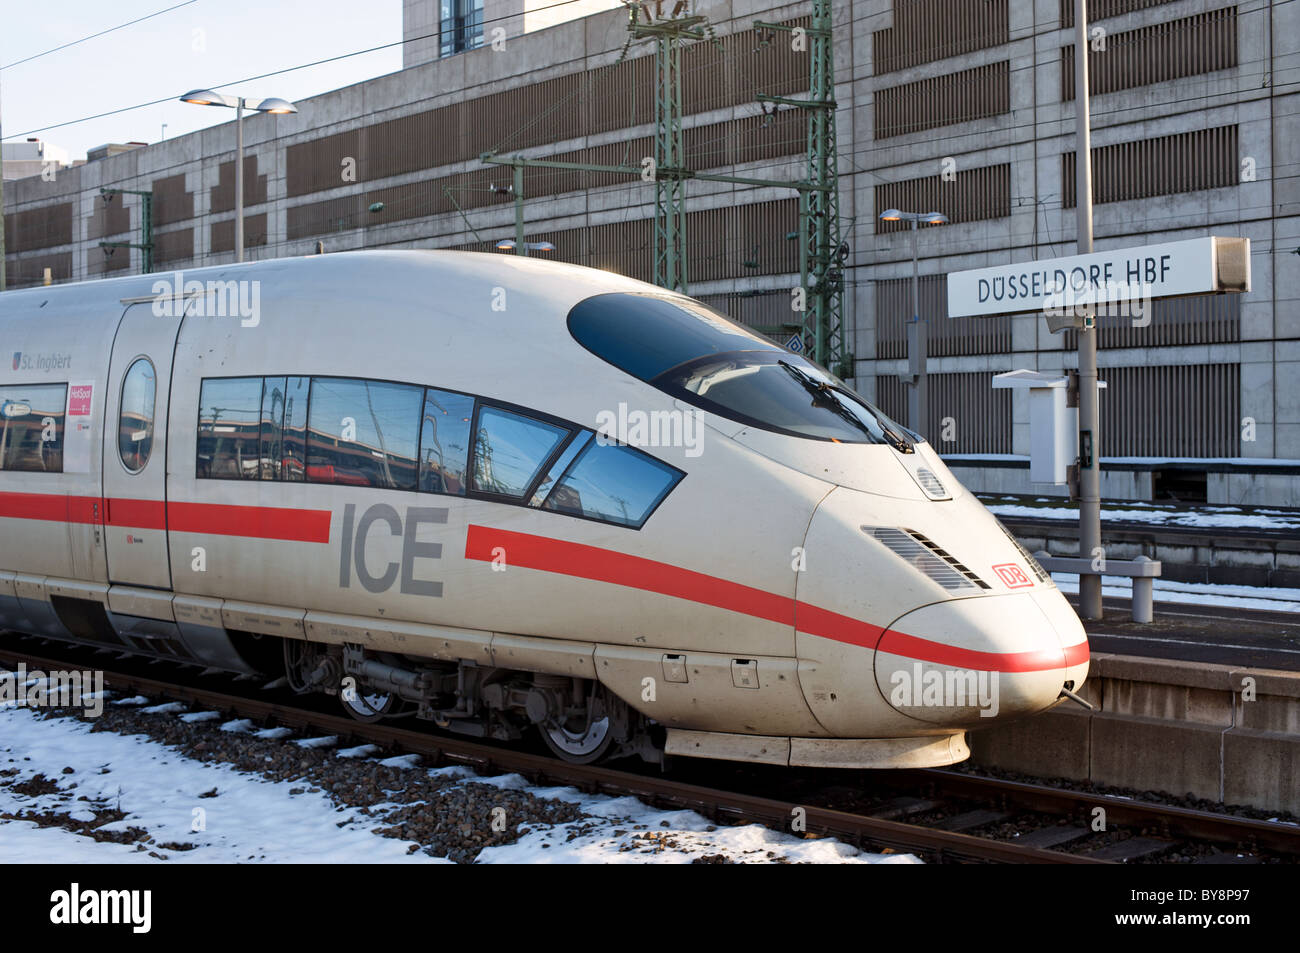 german railways intercity express ice dusseldorf hbf main railway stock photo 33999203 alamy. Black Bedroom Furniture Sets. Home Design Ideas